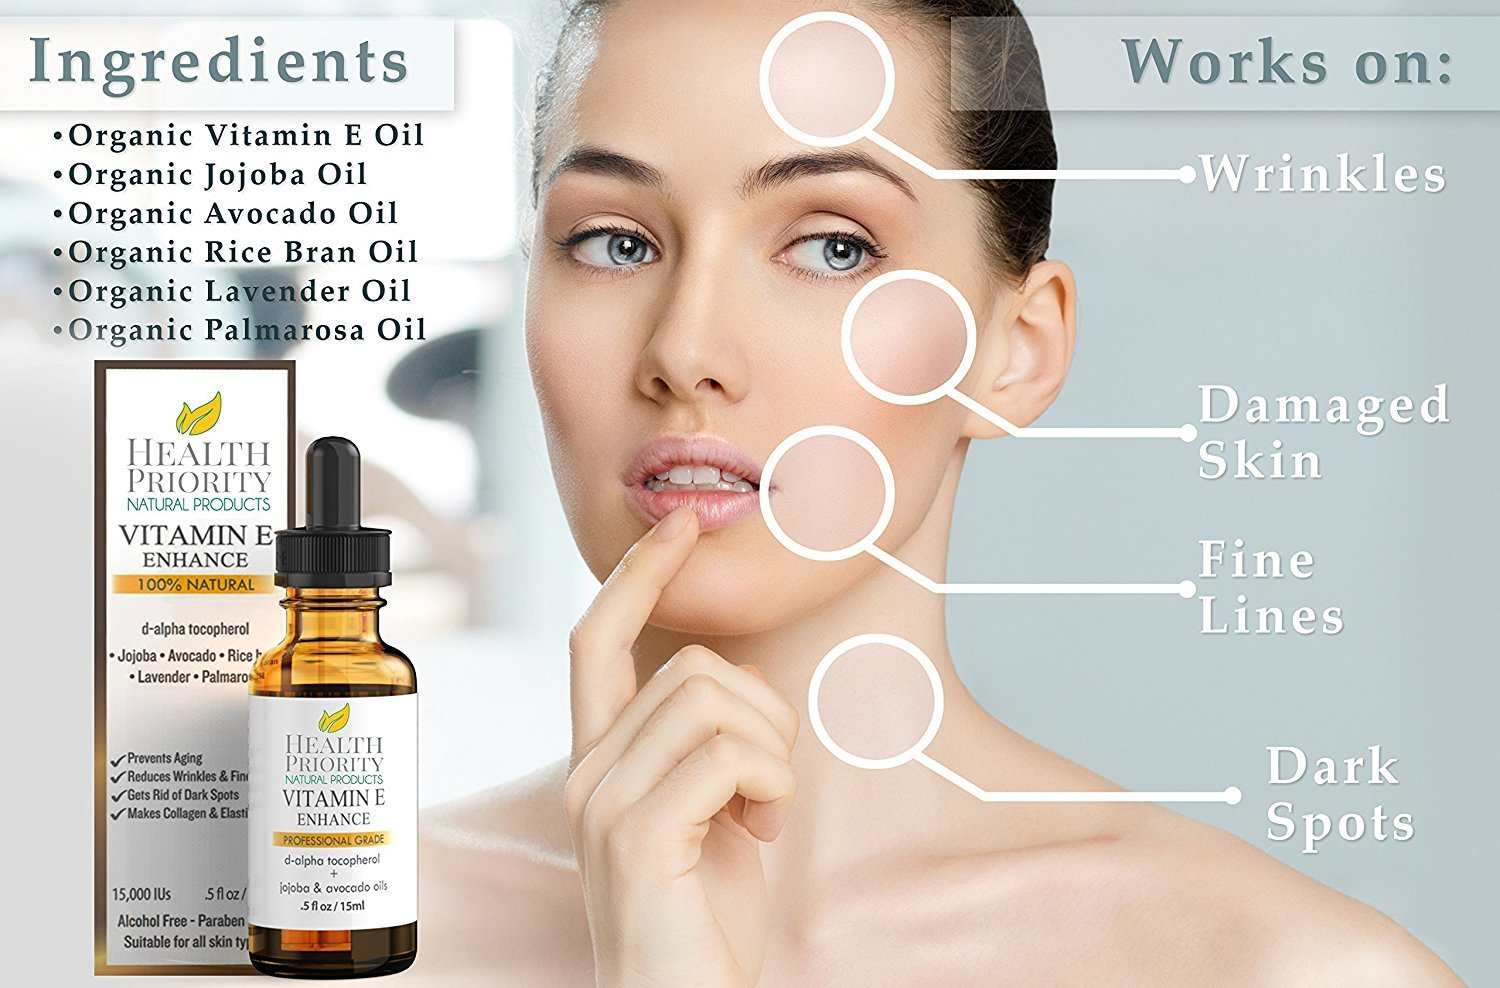 Amazon.com: 100% Natural & Organic Vitamin E Oil For Your Face & Skin -  15,000/30,000 IU - Reduces Wrinkles & Lightens Dark Spots.